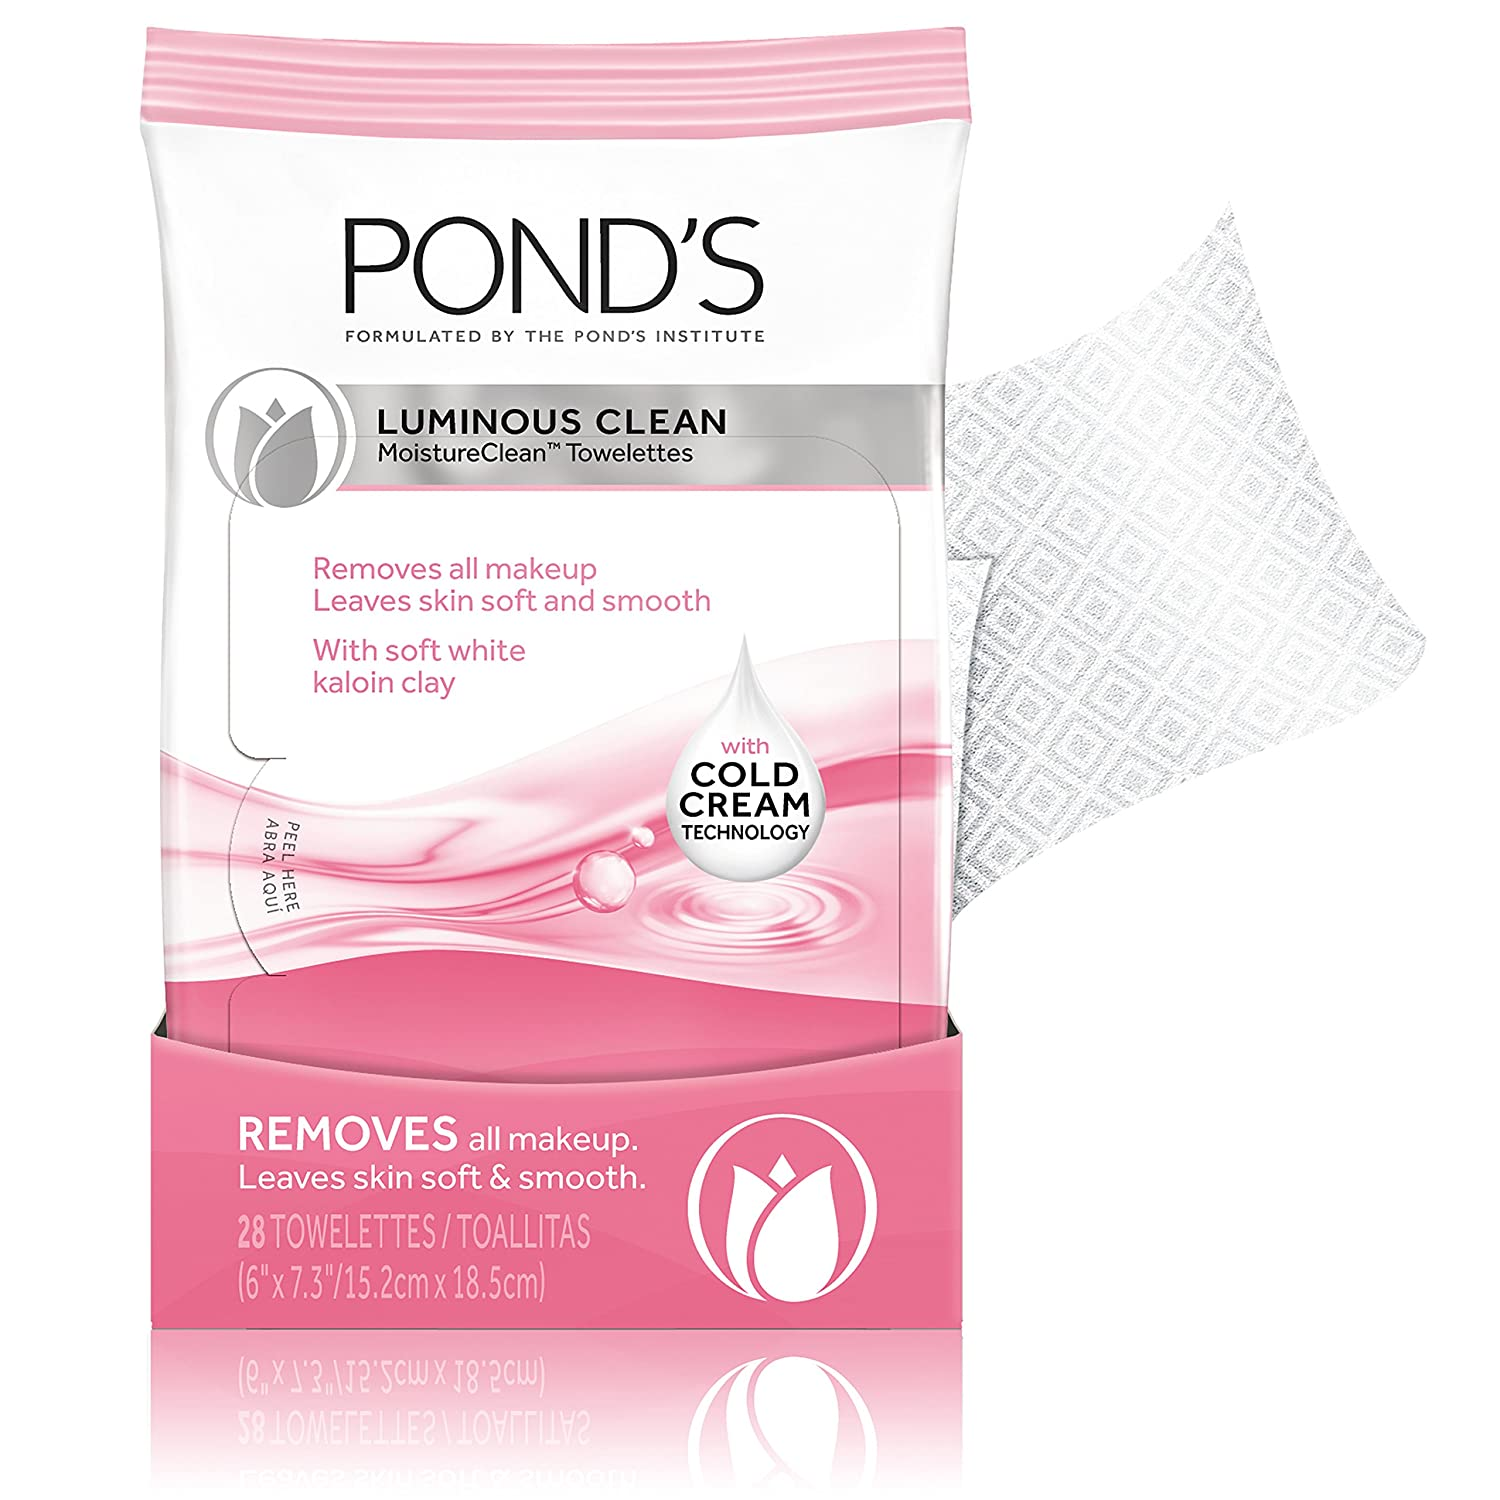 Amazon.com: Ponds Moisture Clean Towelettes, Luminous Clean 28 ct (Pack of 3): Beauty